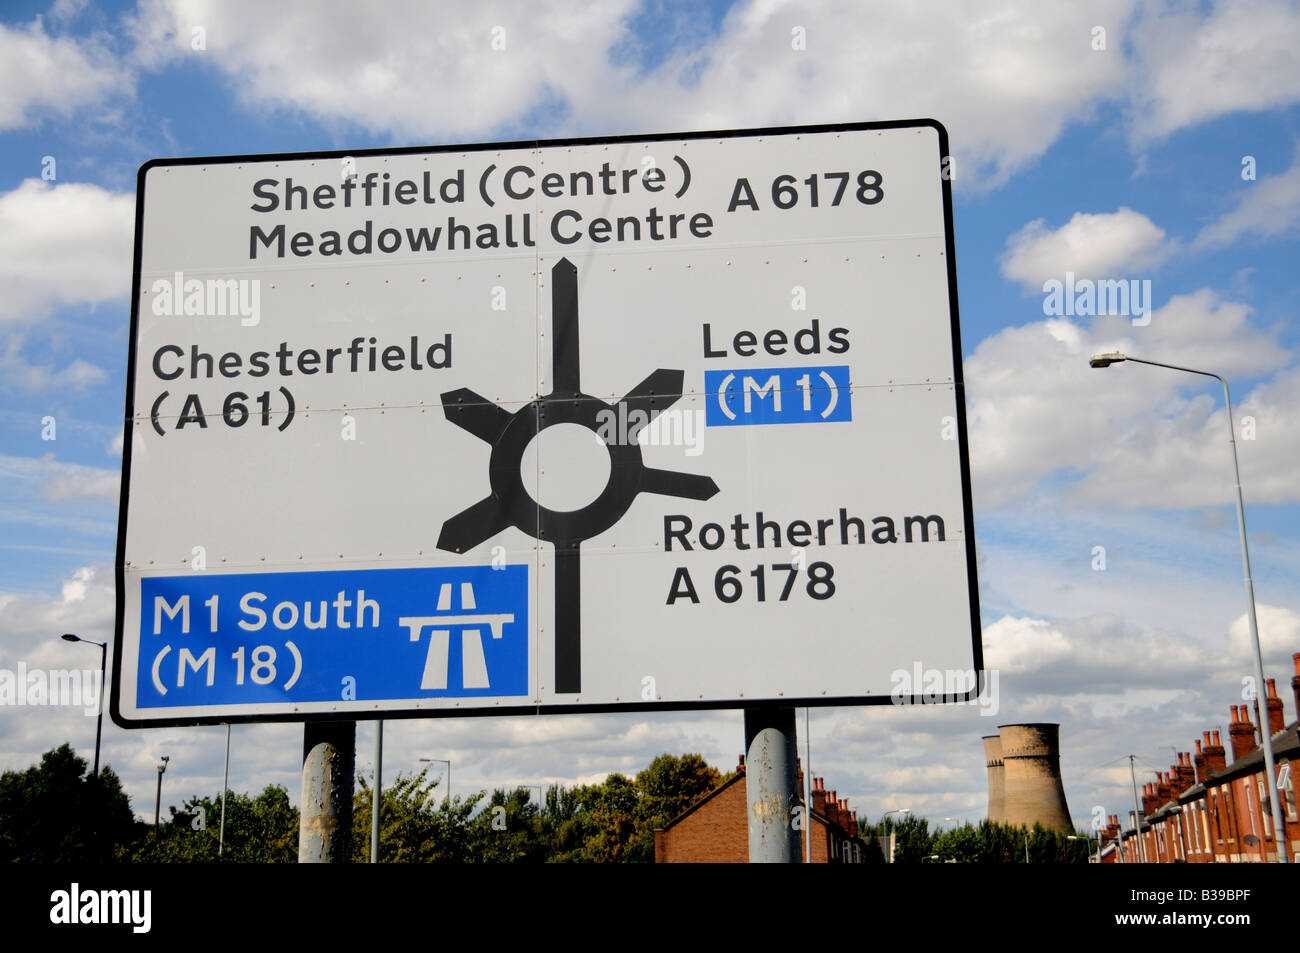 Signpost with Tinsley Cooling Towers in the background 12 hours before the Towers were demolished on 24 August 2008, - Stock Image